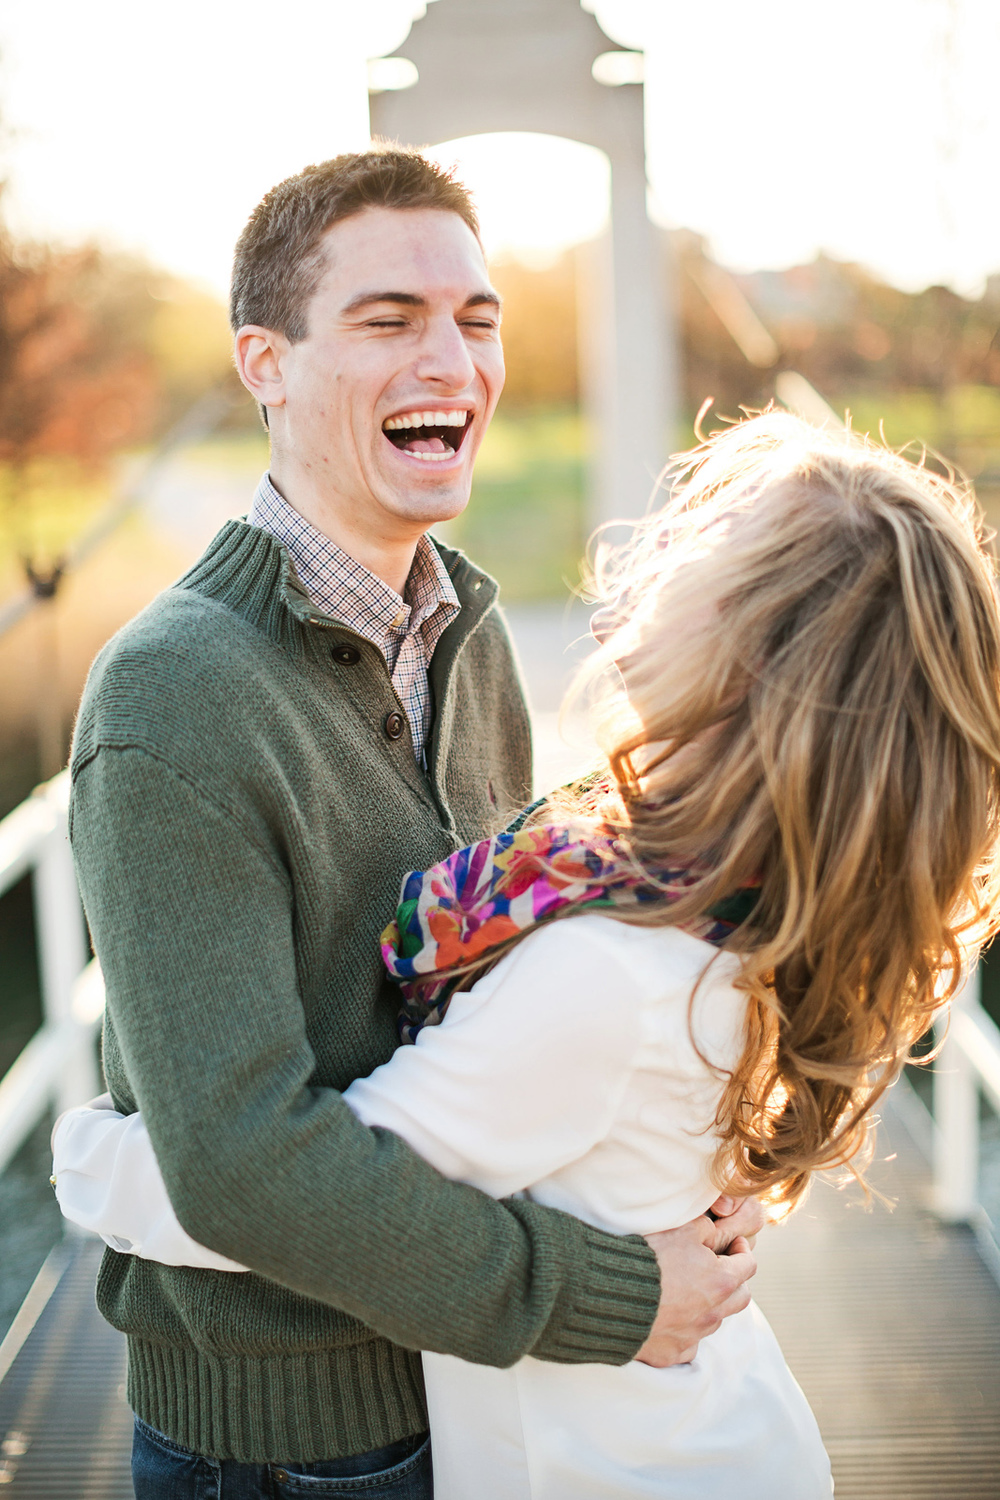 Oldani Photography-St Louis-Forest Park-Grand Basin-Engagement Session-engagement photos_20141108_171311.jpg